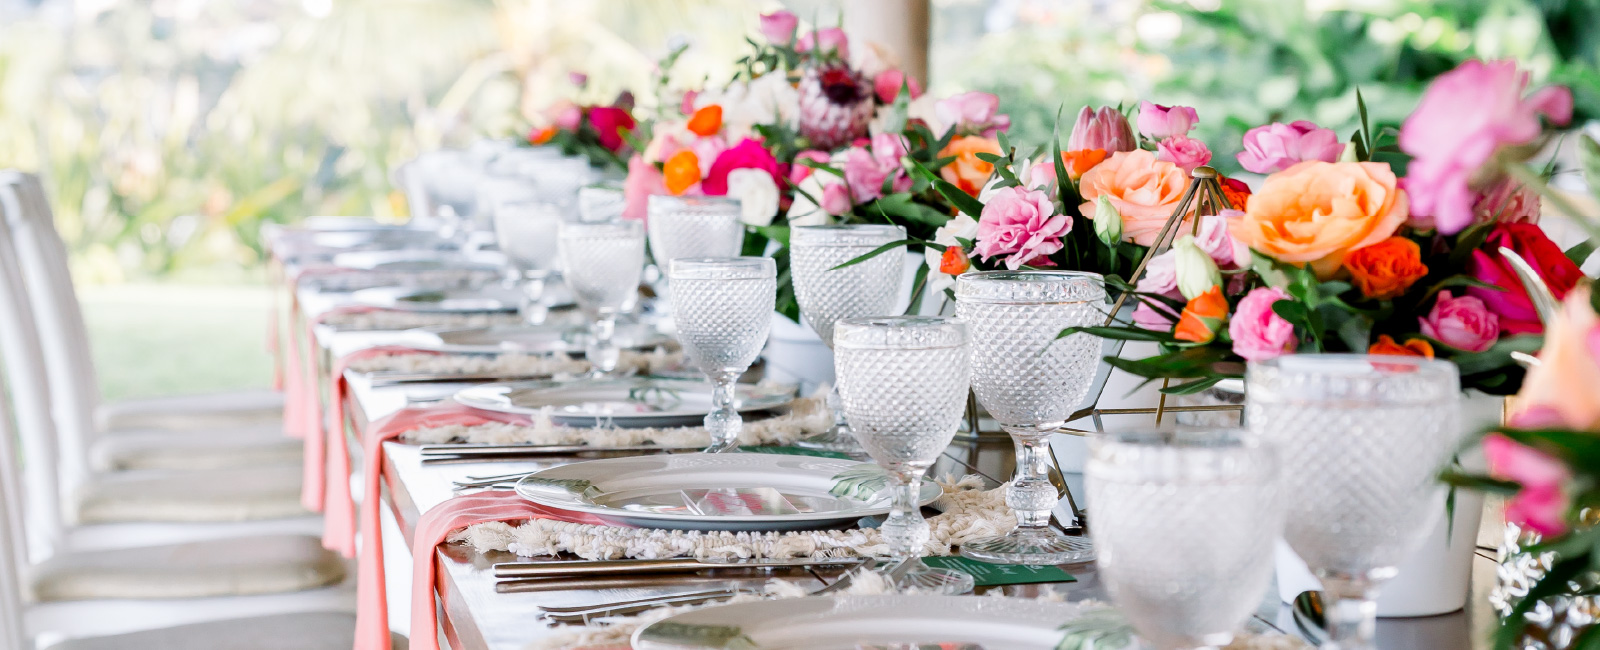 Wine glasses and colorful florals on a long table with china outside in the gorgeous weather of mexico